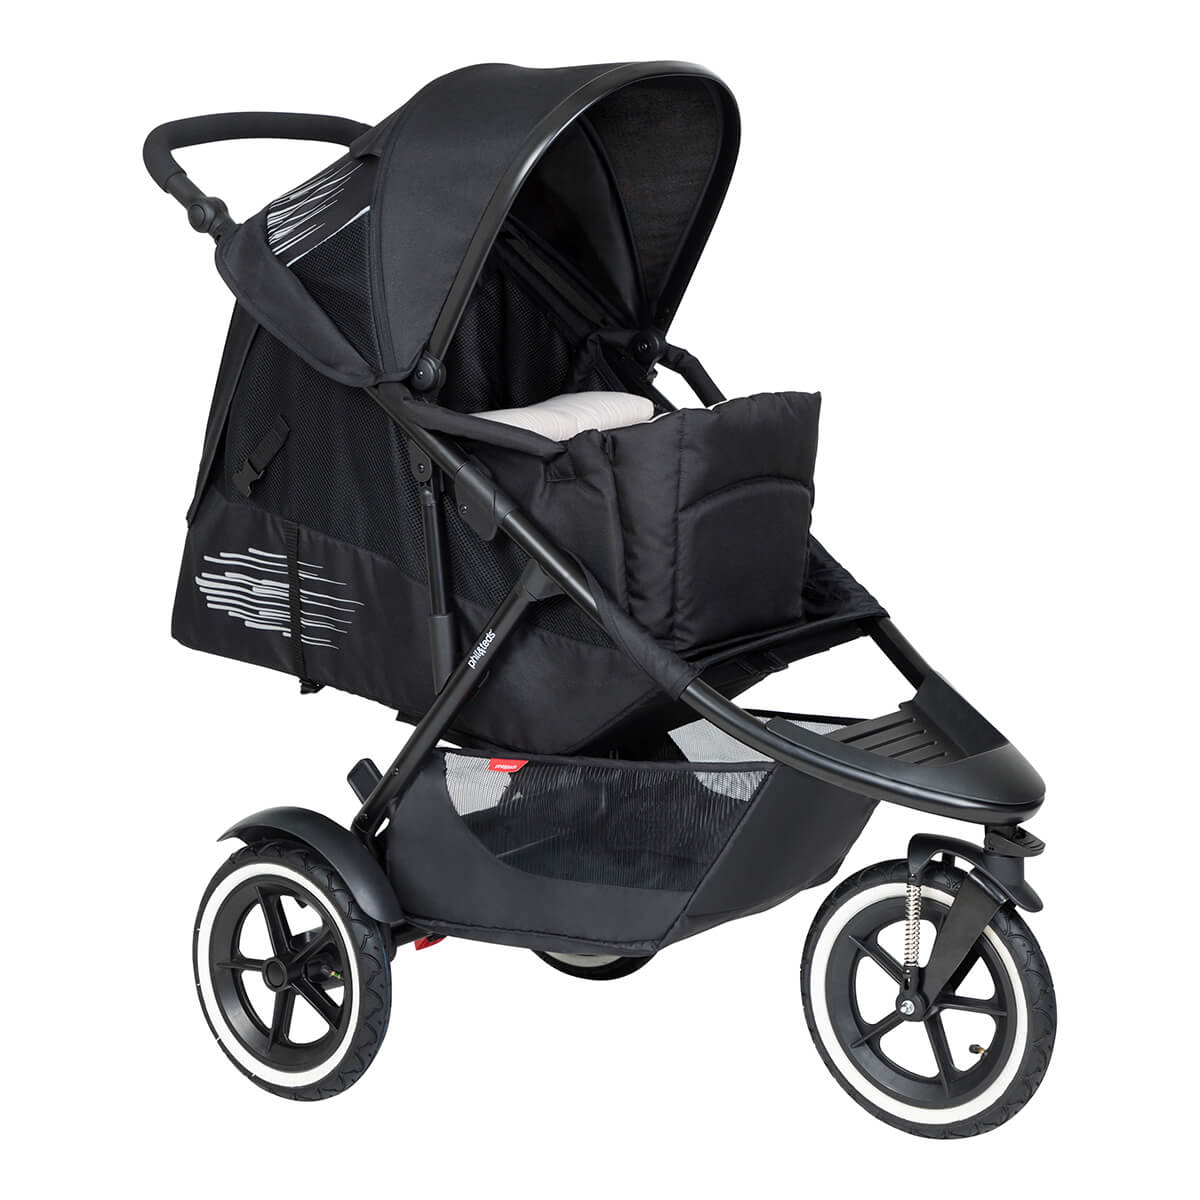 https://cdn.accentuate.io/4509900832845/19466203660482/philteds-sport-buggy-with-cocoon-full-recline-v1626485396539.jpg?1200x1200